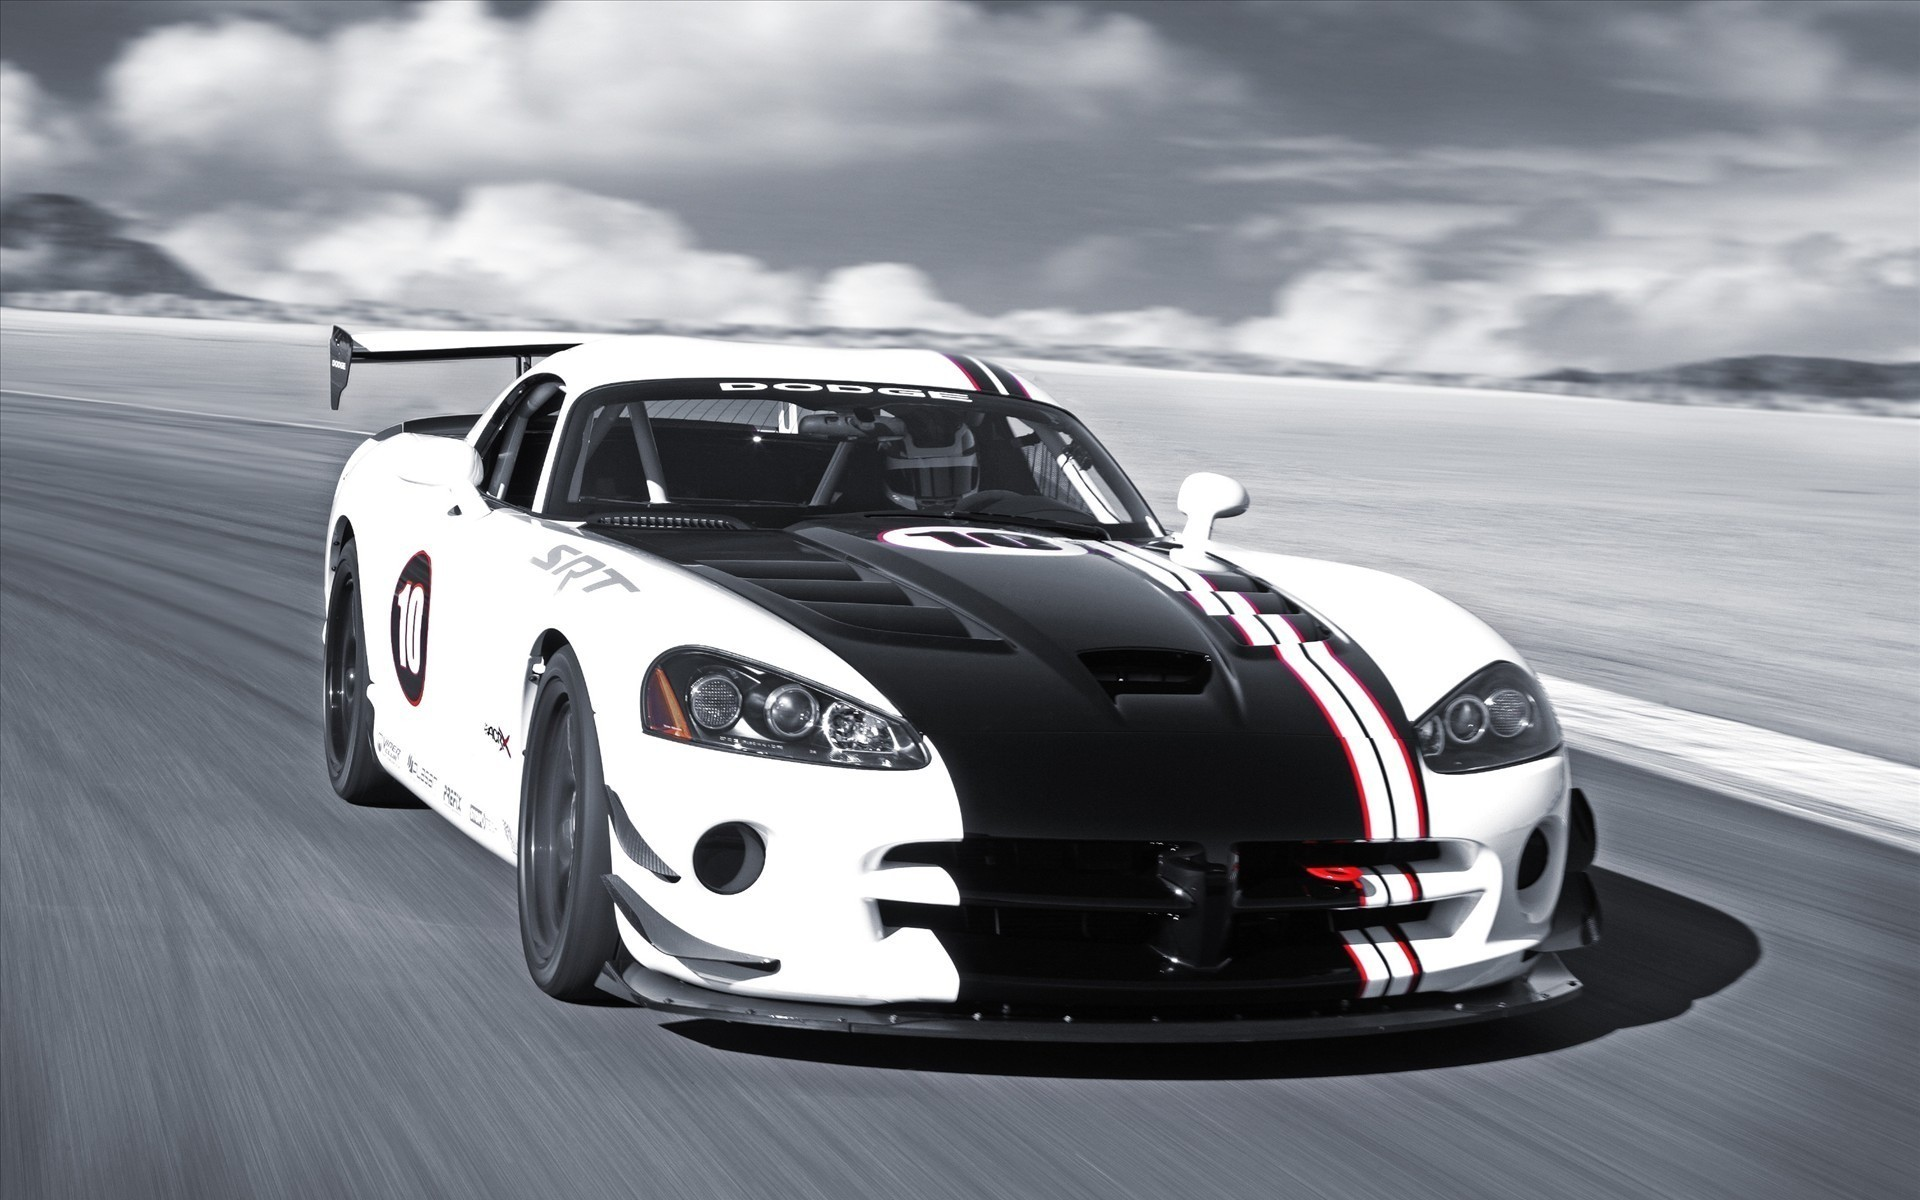 Download desktop wallpaper black and white car dodge viper photo